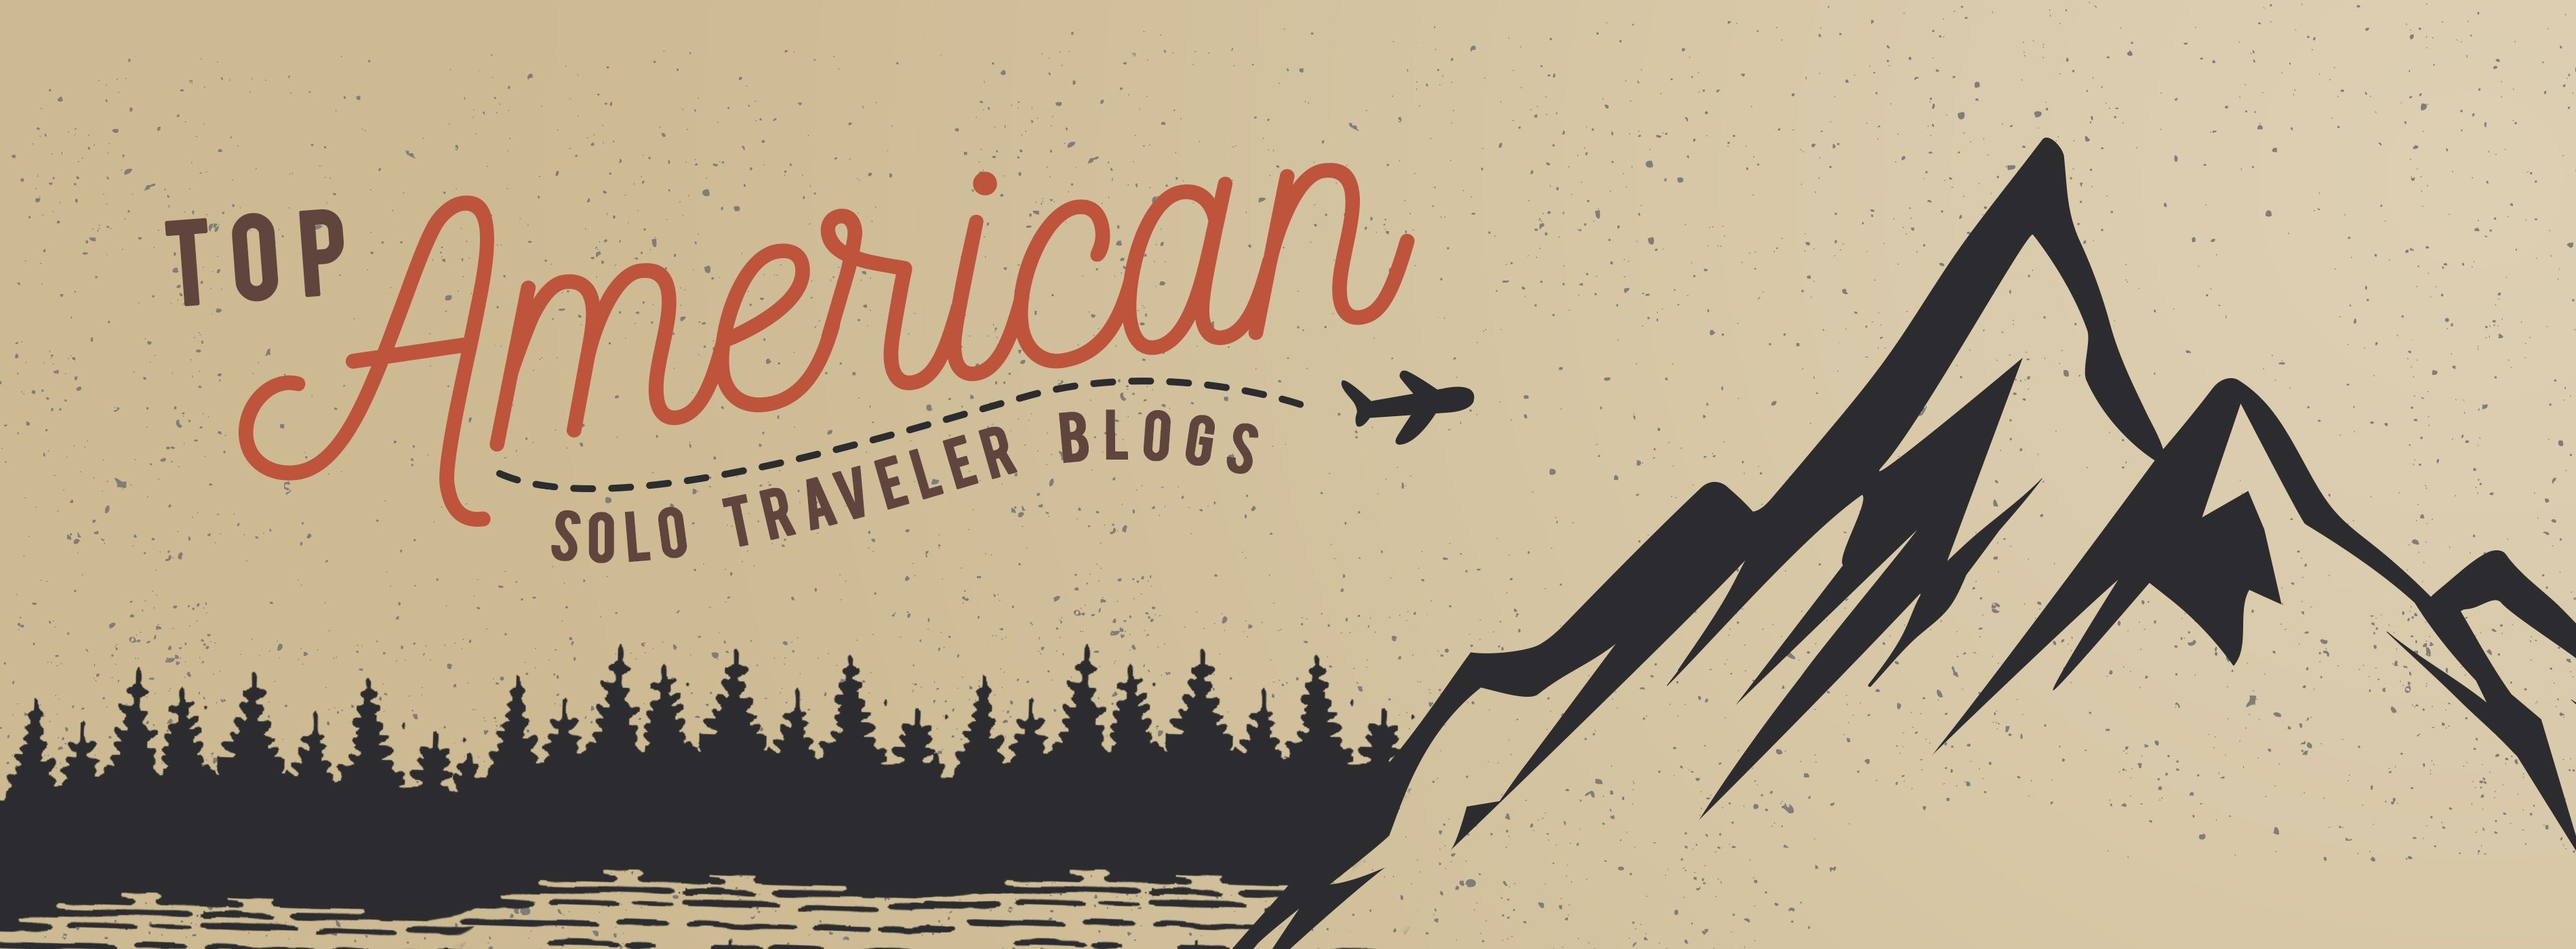 Top American Solo Traveler Blogs